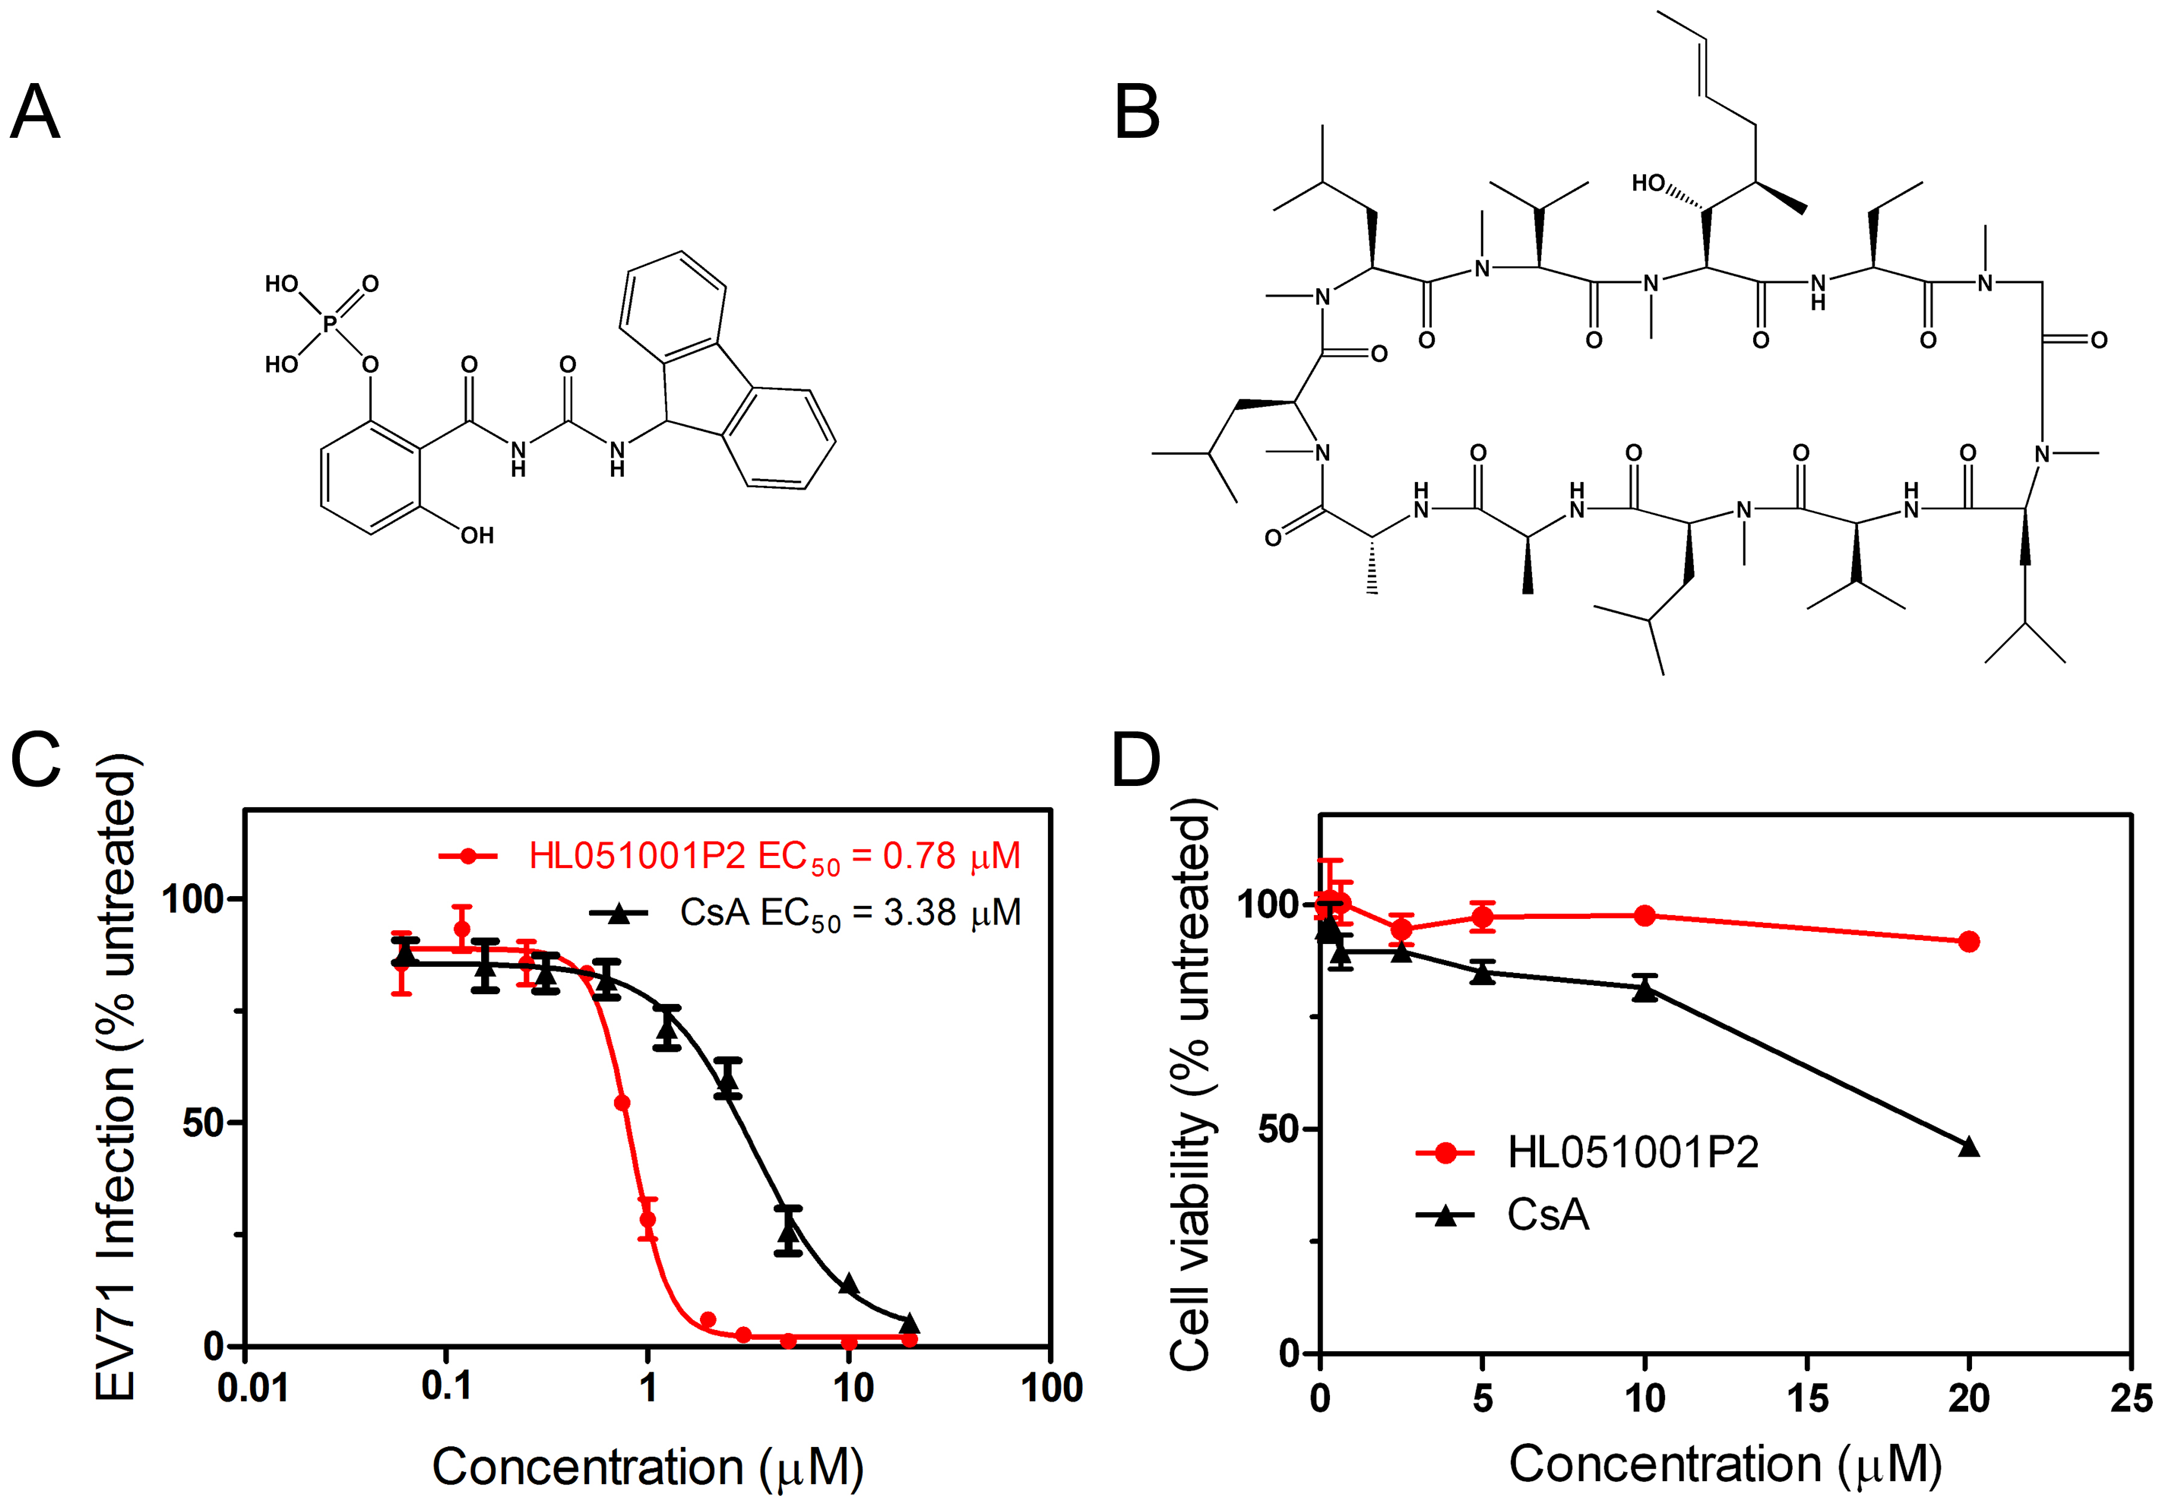 The concentration-dependent reduction of EV71 RNA following treatment with compound HL051001P2 and CsA.